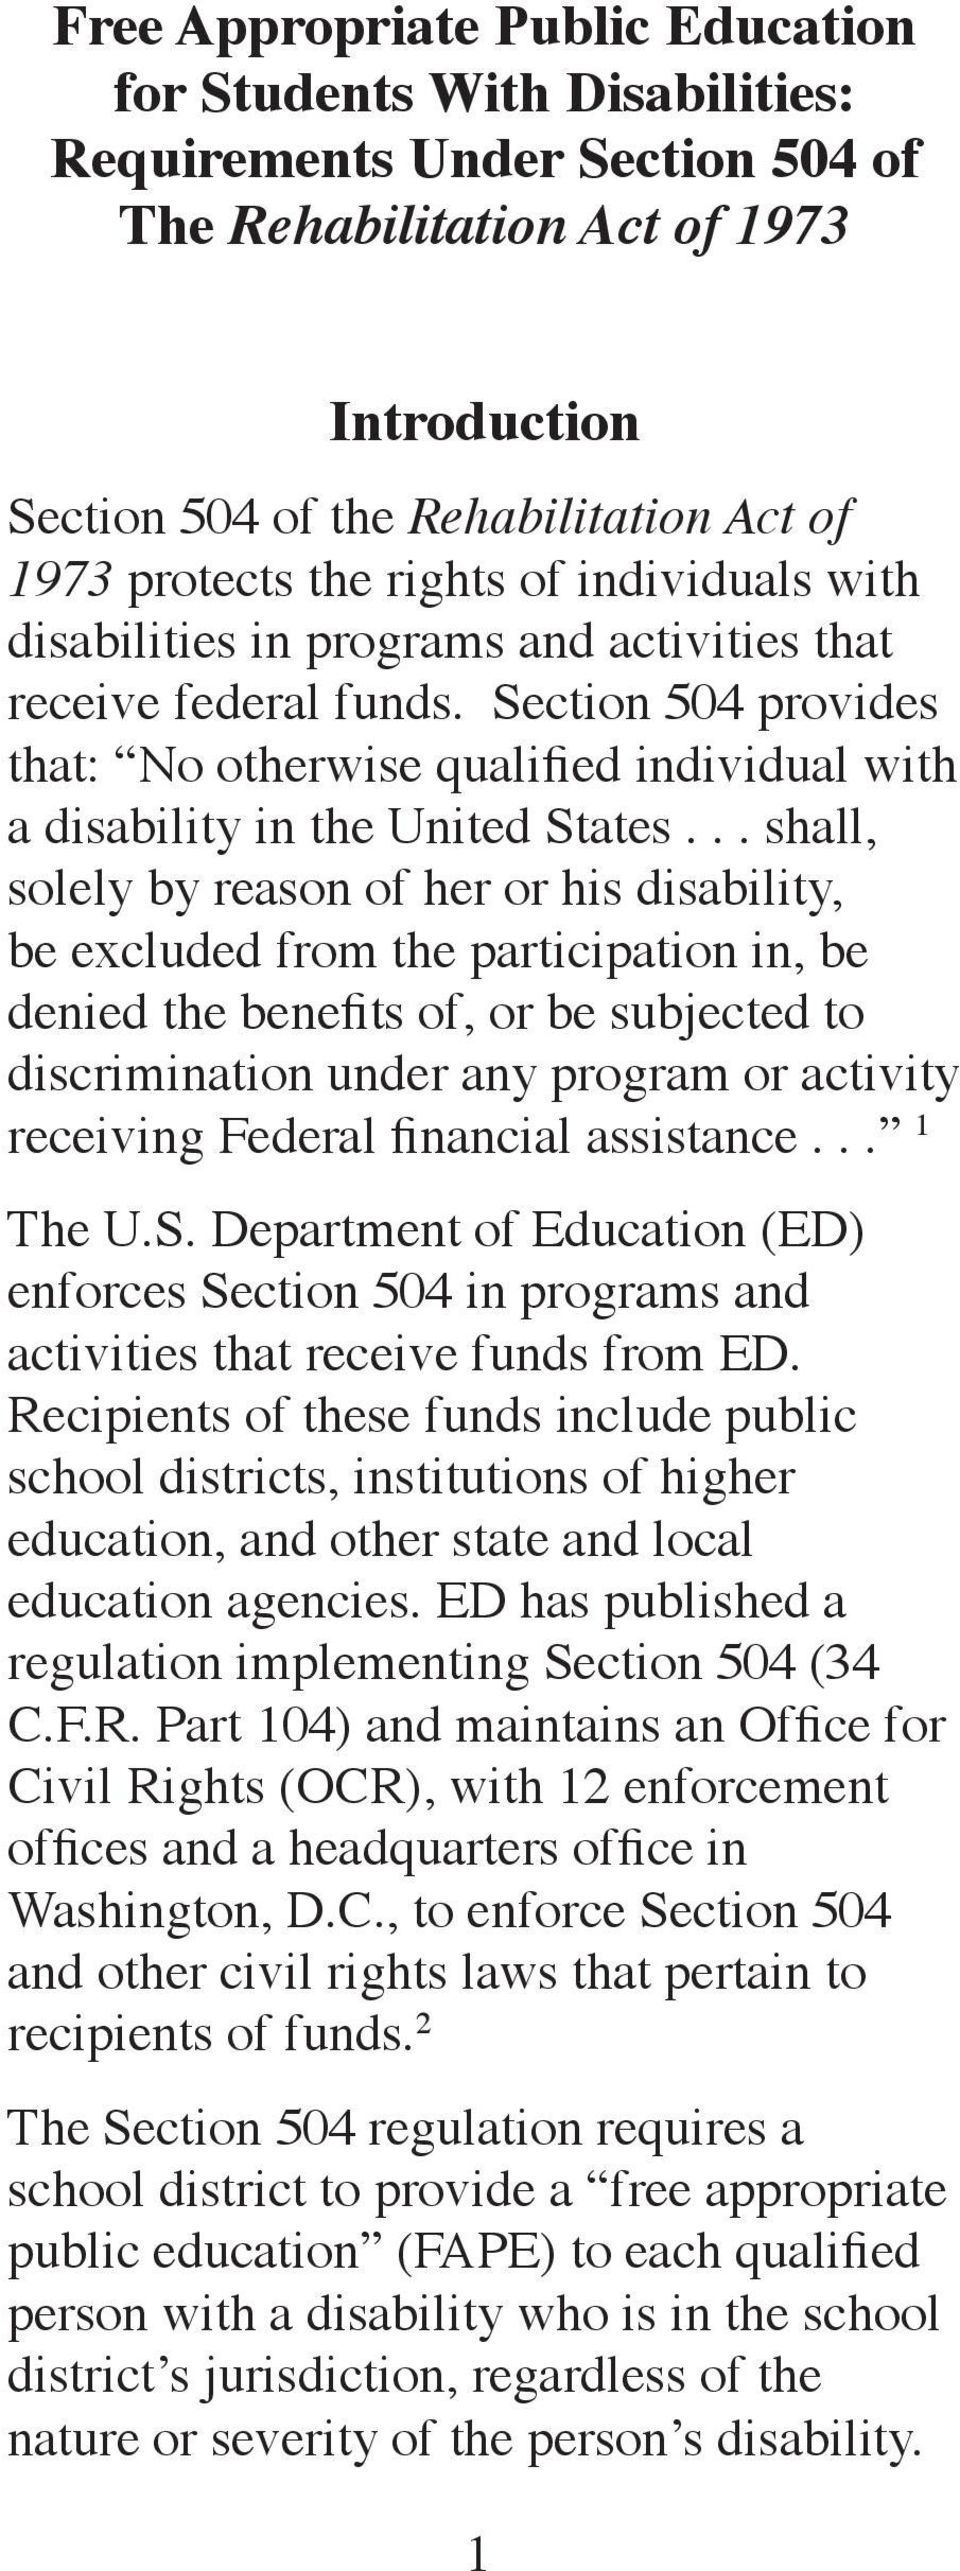 .. shall, solely by reason of her or his disability, be excluded from the participation in, be denied the benefits of, or be subjected to discrimination under any program or activity receiving